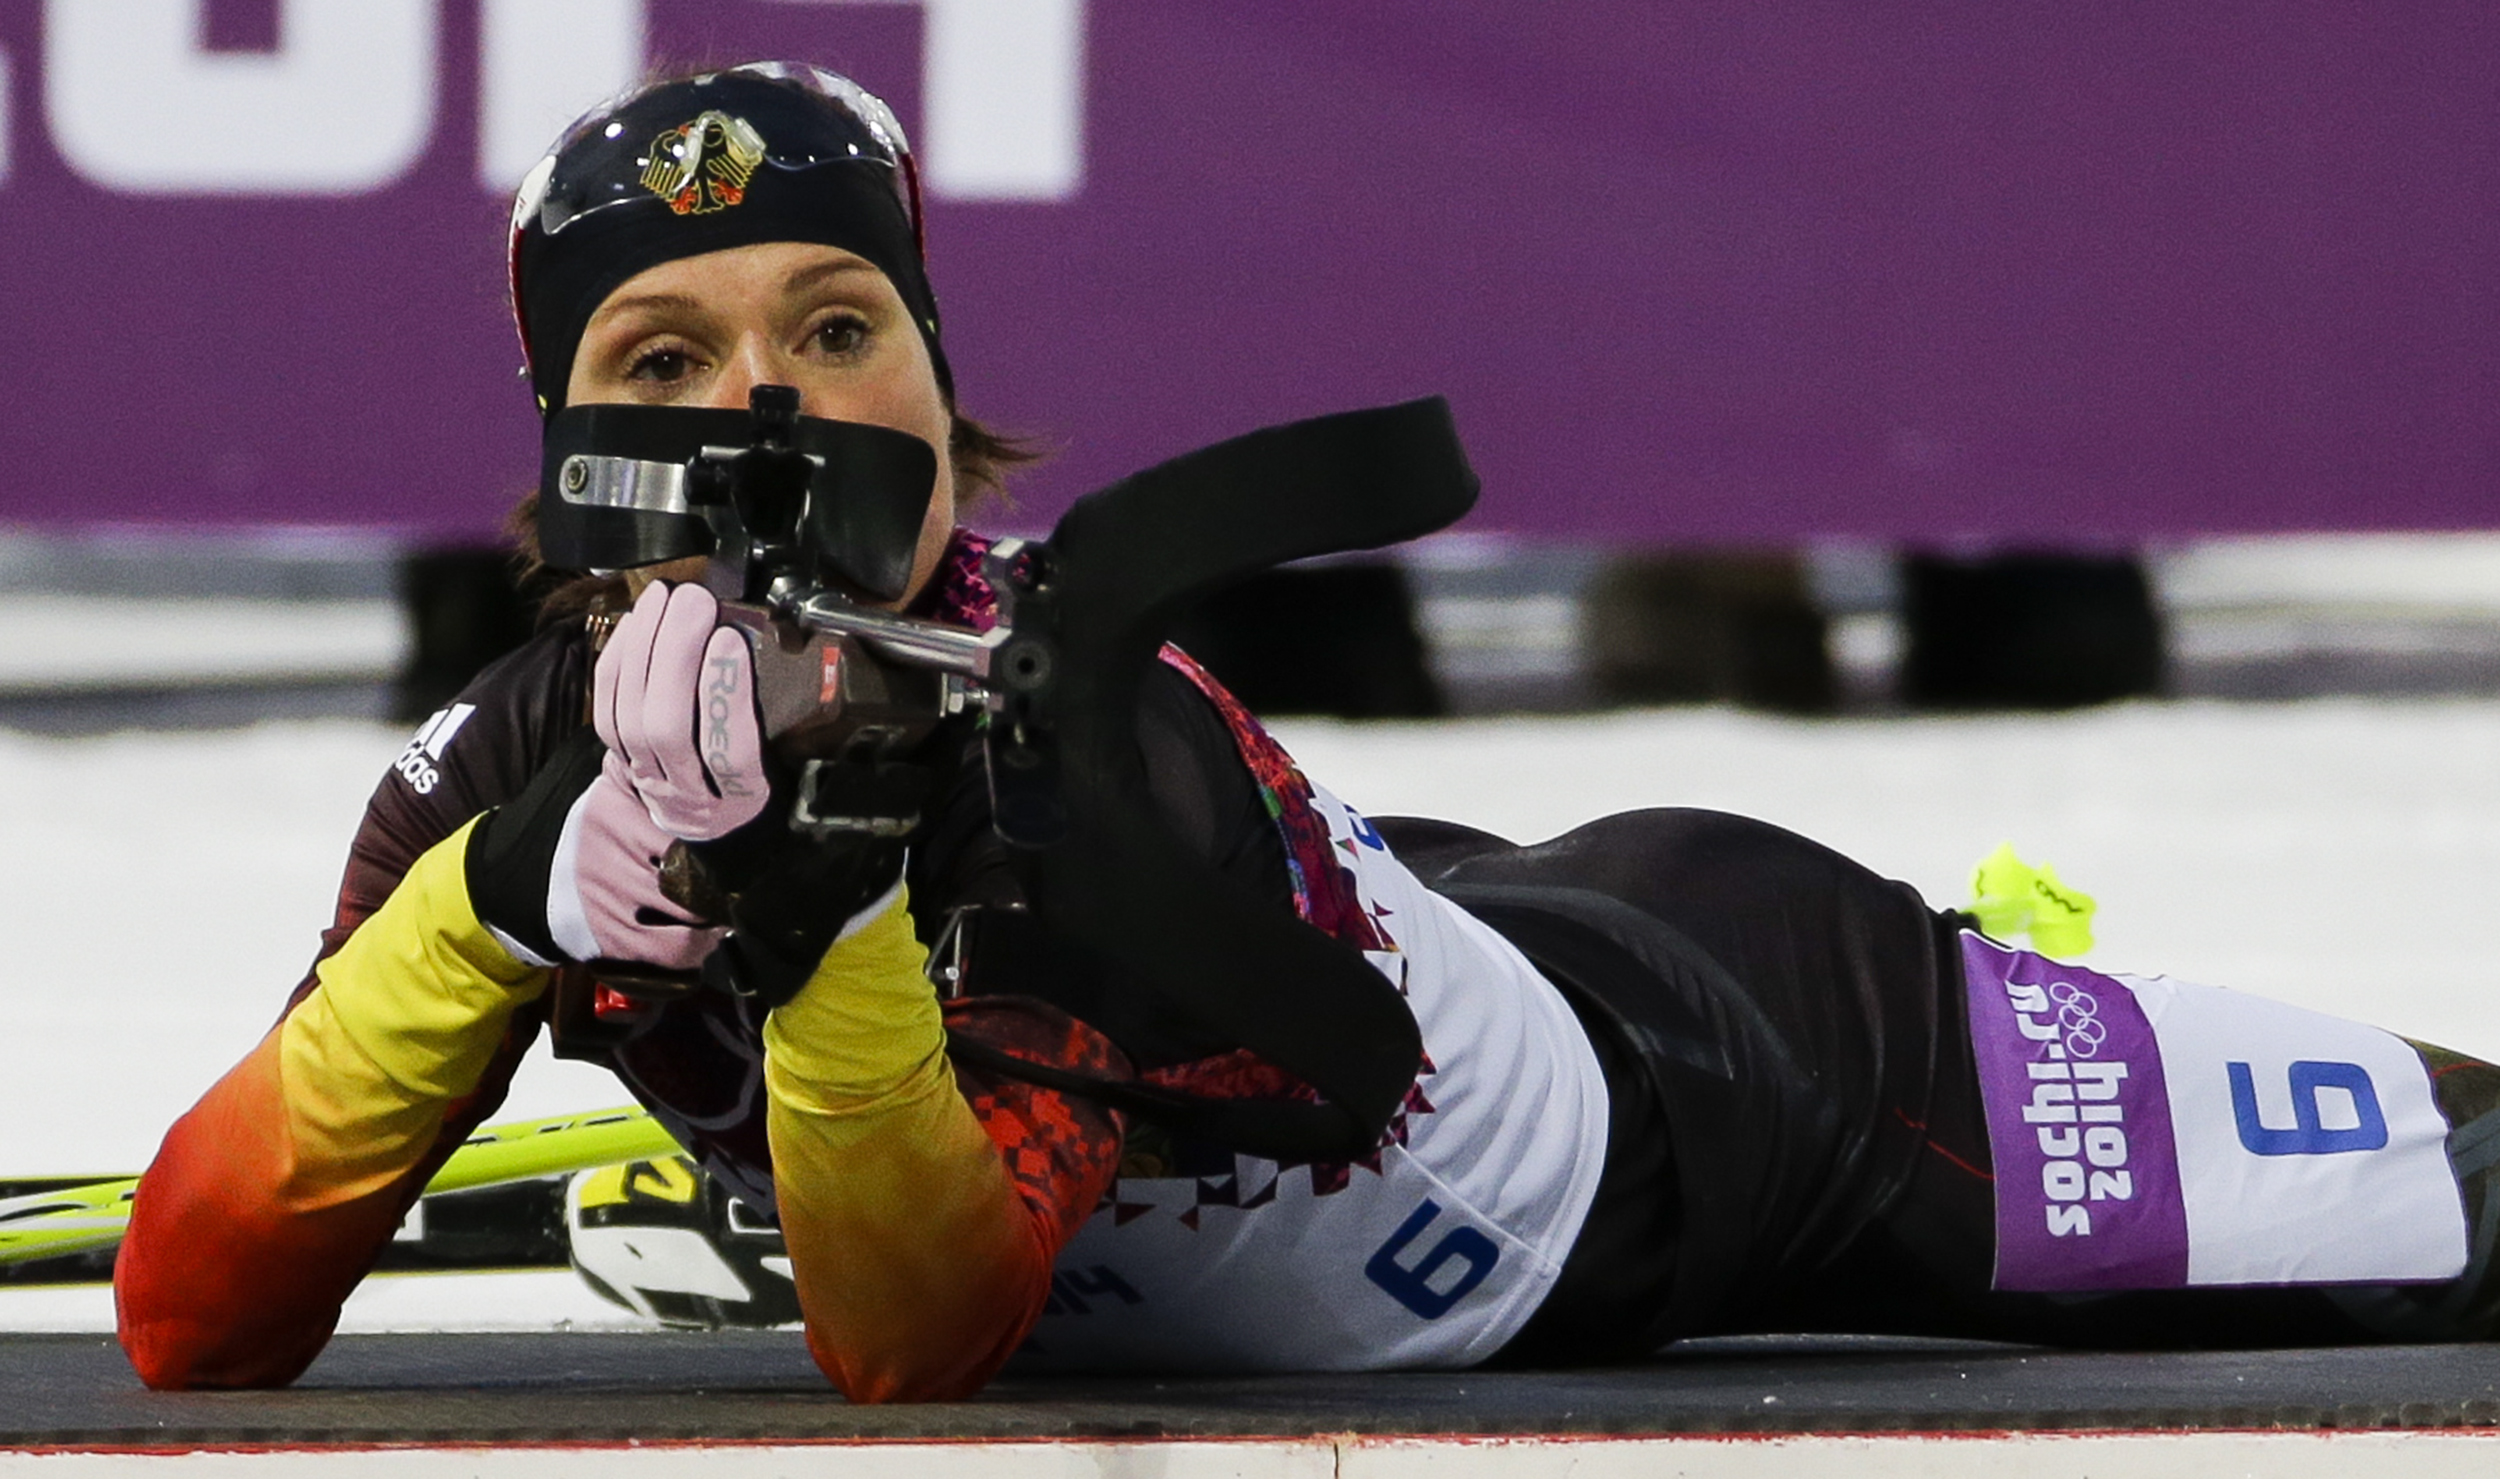 """FILE - In this Feb. 9, 2014 file photo, Germany's Evi Sachenbacher-Stehle prepares to shoot during the women's biathlon 7.5k sprint, at the 2014 Winter Olympics, in Krasnaya Polyana, Russia. German Olympic officials said Sachenbacher-Stehle has been kicked out of the Sochi Games after a positive doping test. The German Olympic Committee said she tested positive on Monday, Feb. Feb. 17, for the stimulant methylhexanamine. Both the """"A'' sample and backup """"B'' sample were positive. The committee said the athlete has been removed from the team and is being sent home.  (AP Photo/Gero Breloer, File)"""